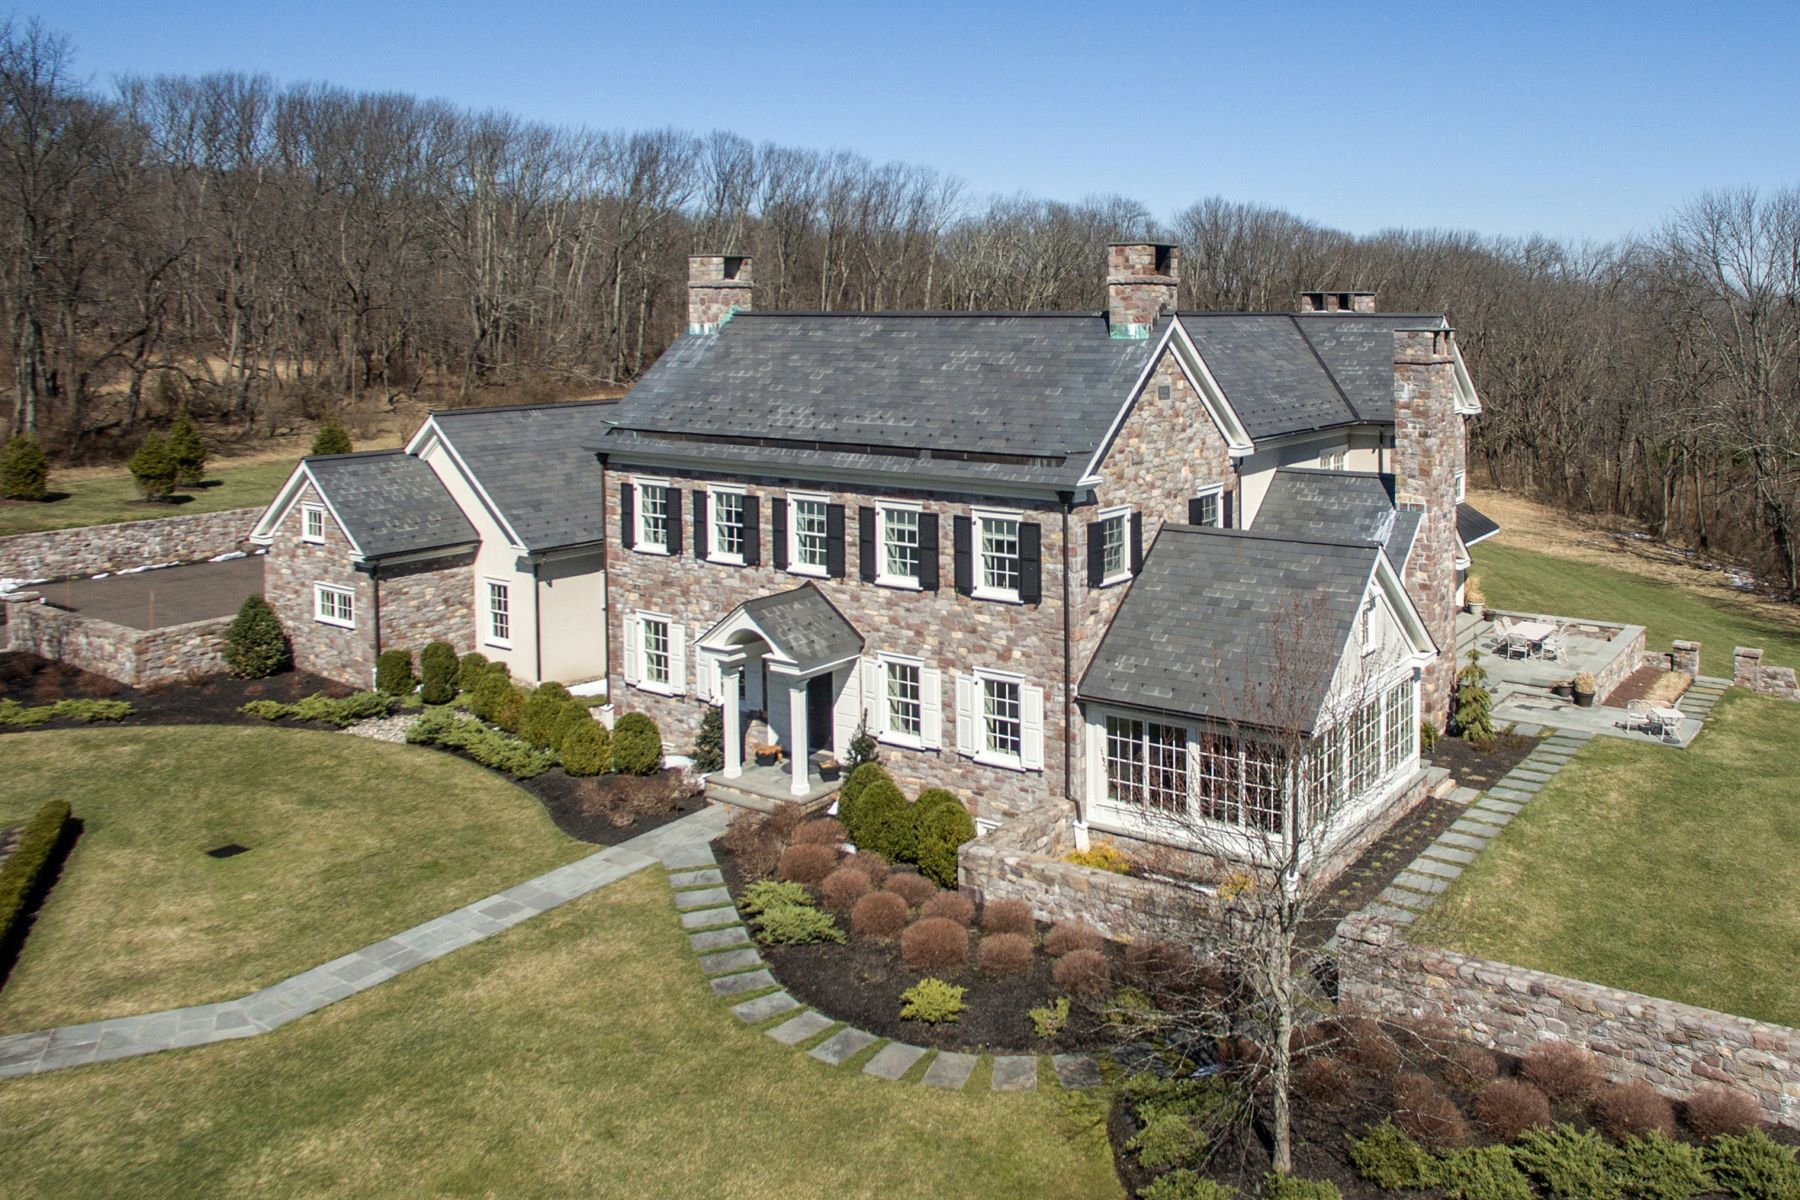 Single Family Homes for Sale at Bucks County Perfection 5811 RIDGEVIEW DR Doylestown, Pennsylvania 18902 United States